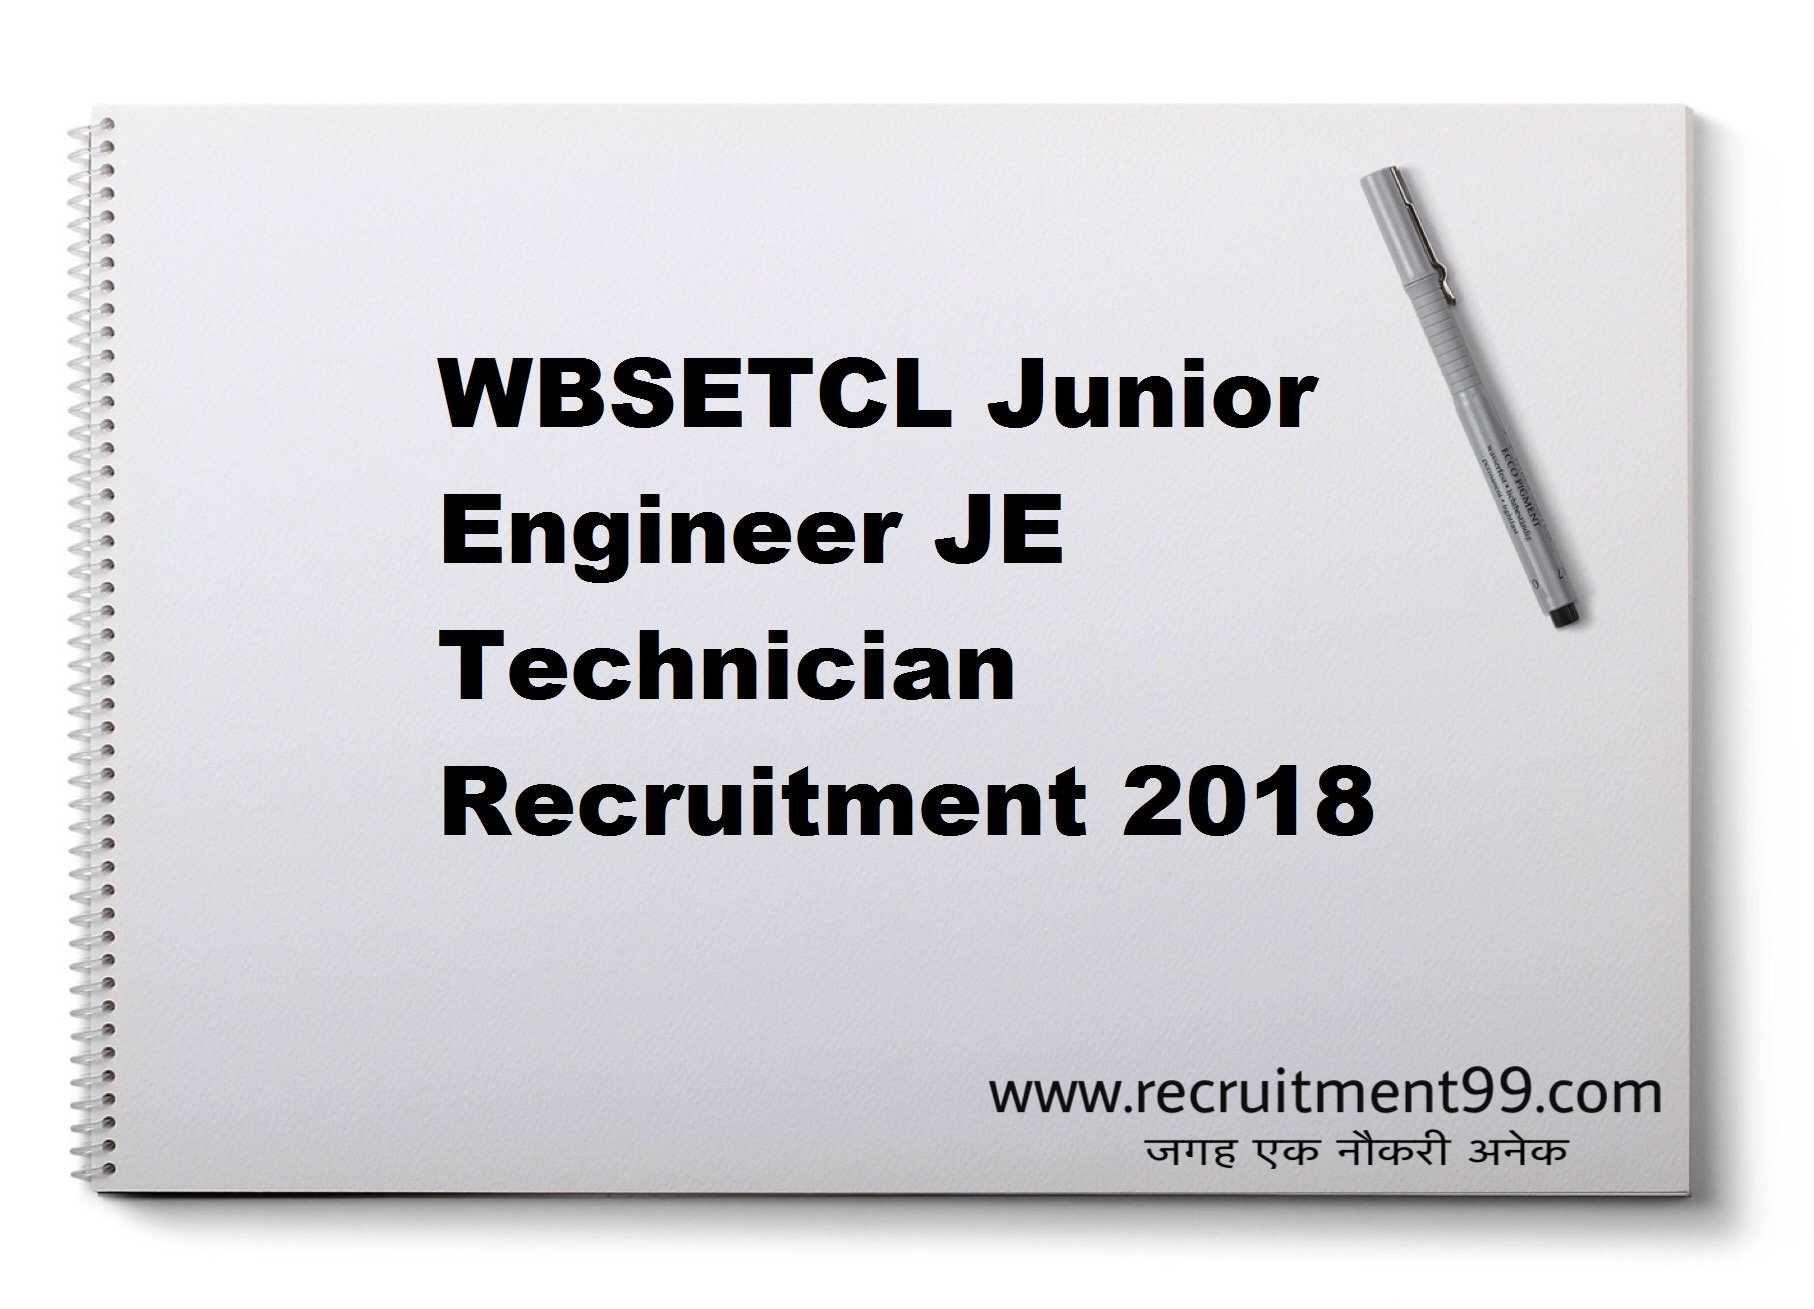 WBSETCL Junior Engineer JE Technician Recruitment Admit Card Result 2018